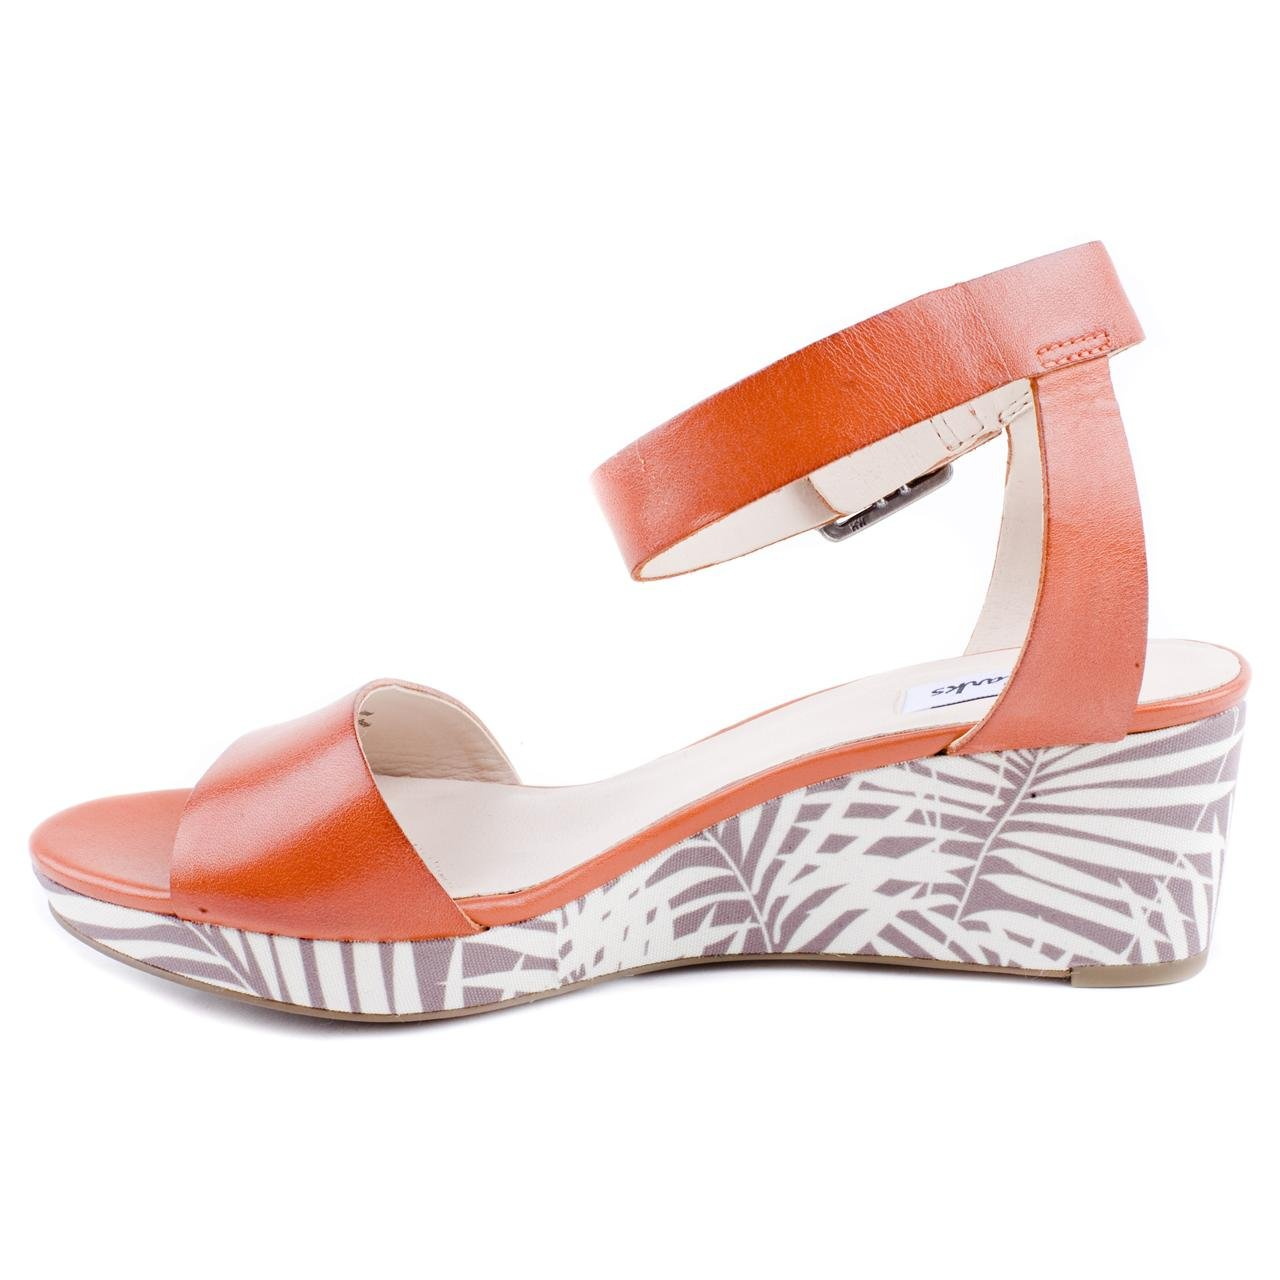 d1a27f85a Ladies Clarks Ornate Jewel Orange Wedge Sandals Size 8  Amazon.co.uk  Shoes    Bags